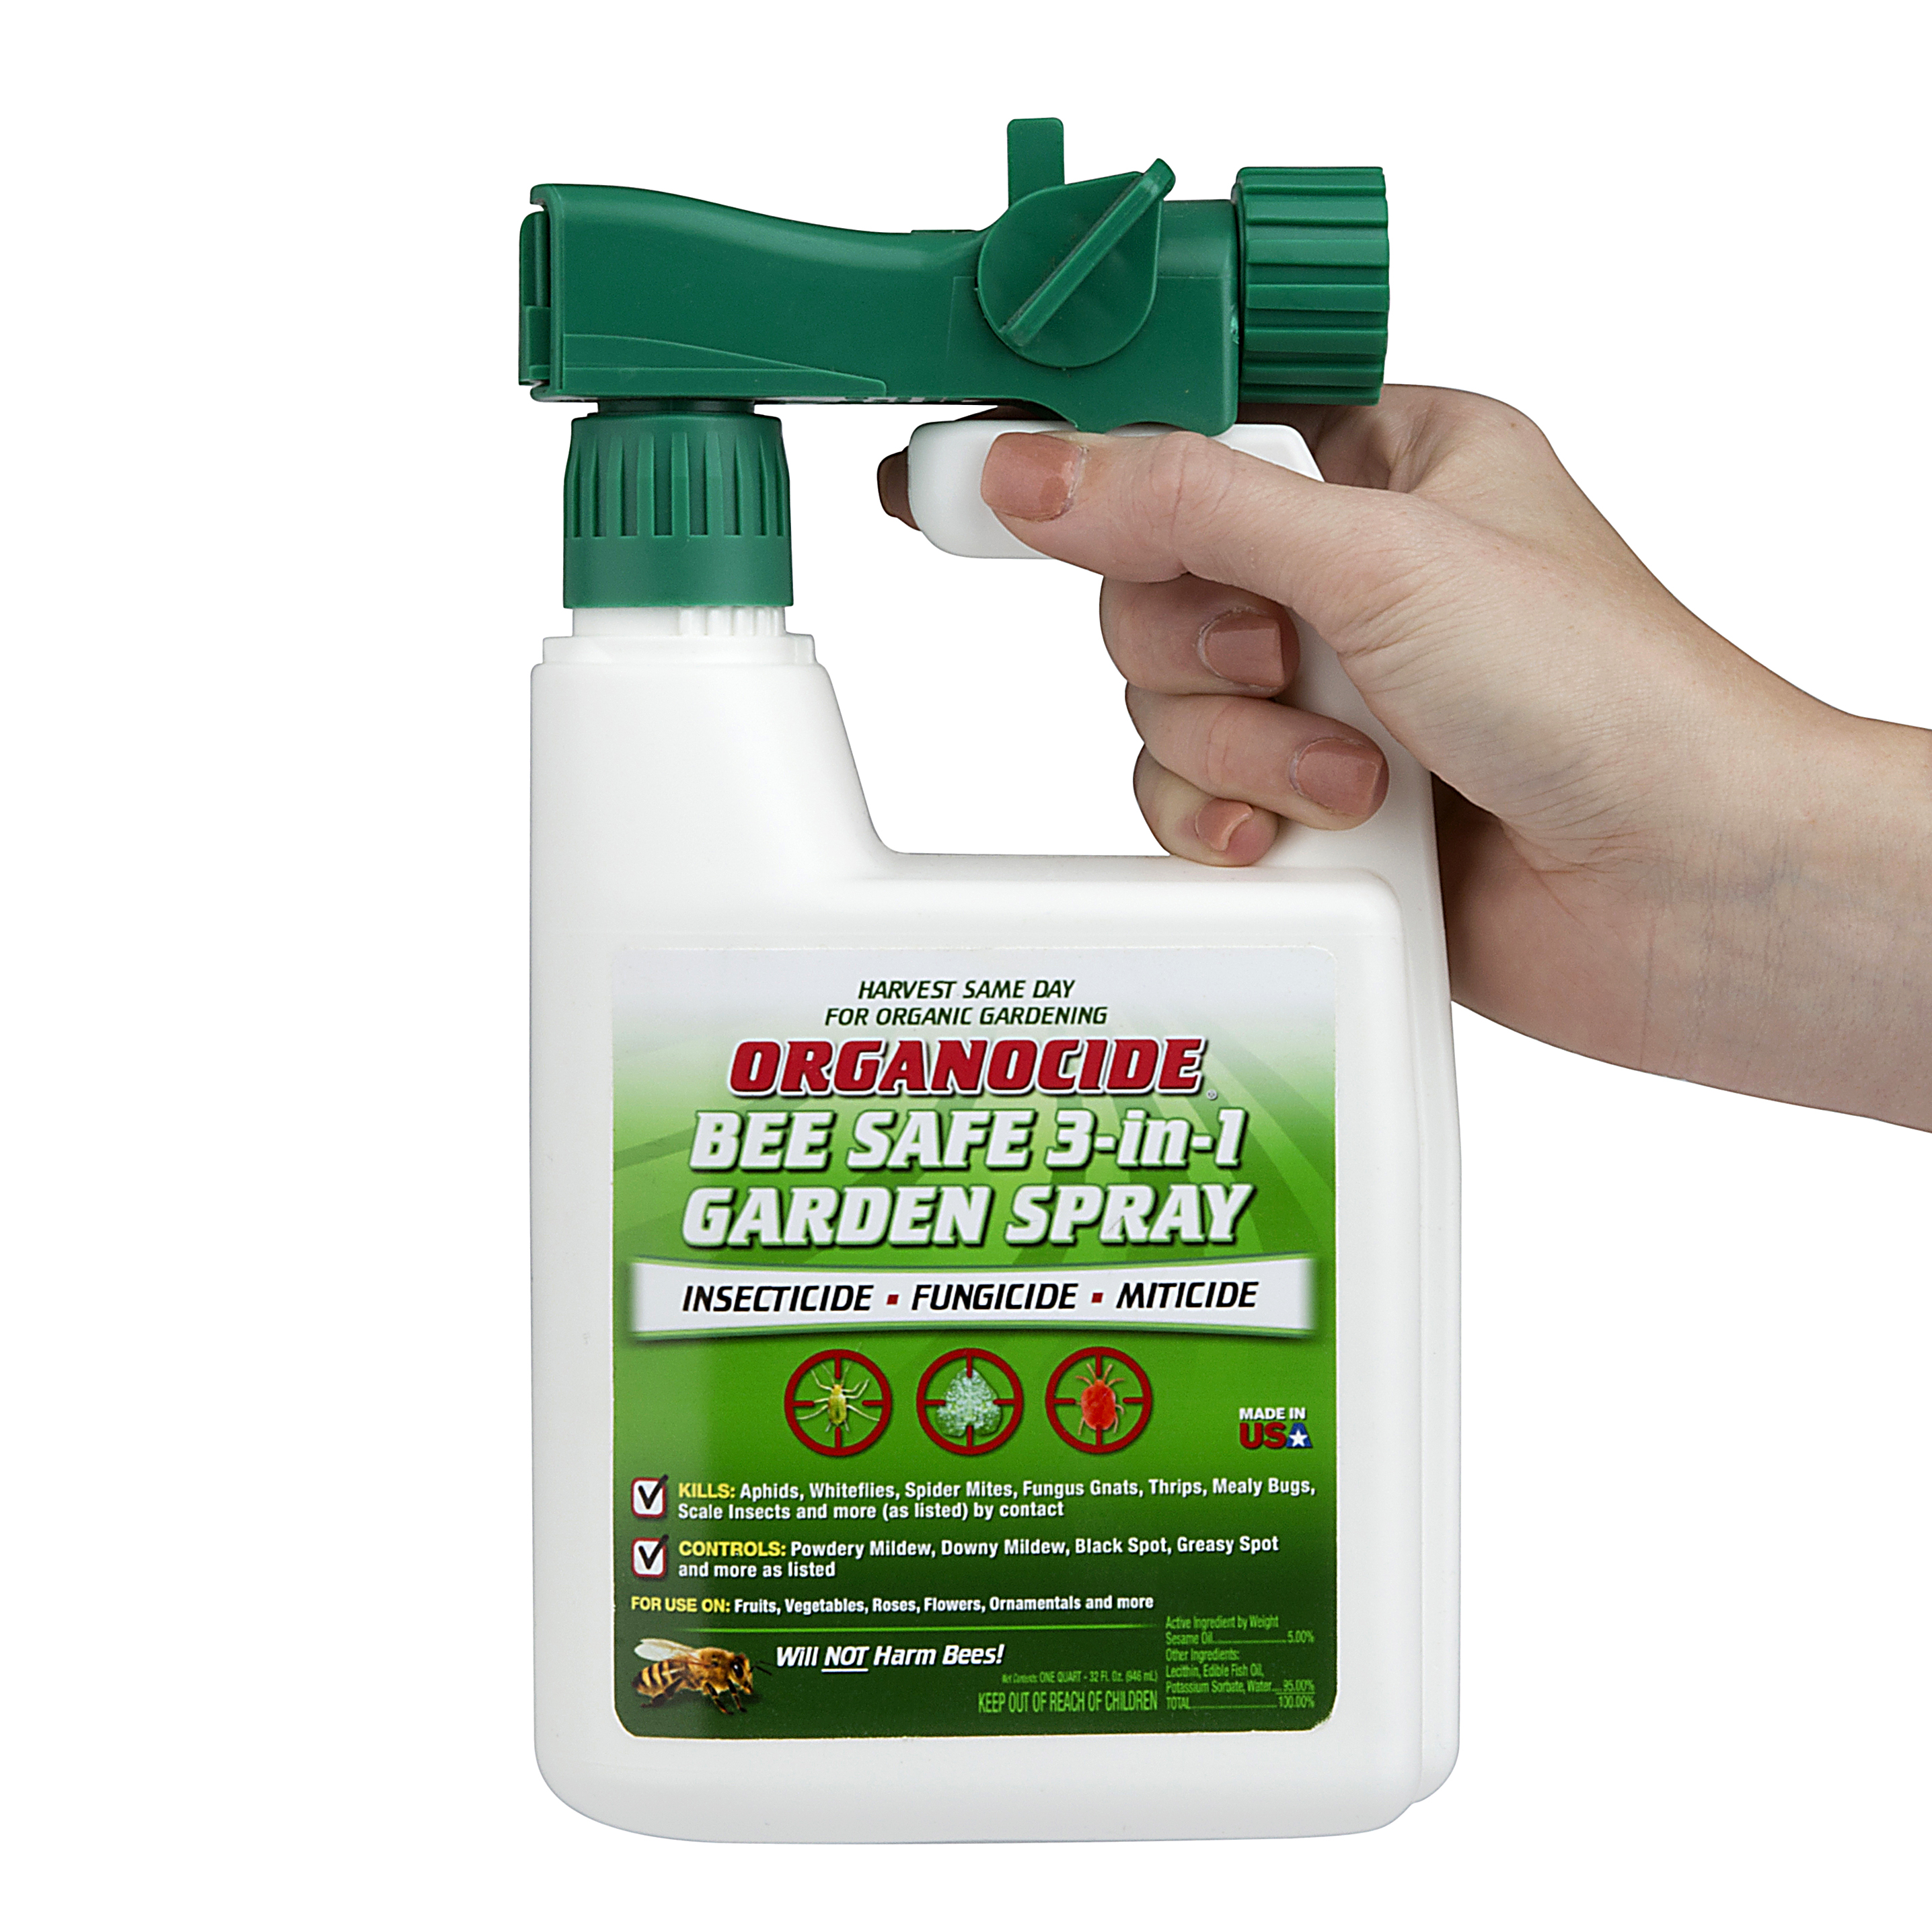 Organocide 3 In 1 Organic Pest Control Garden Spray Concentrate, 1 Qt